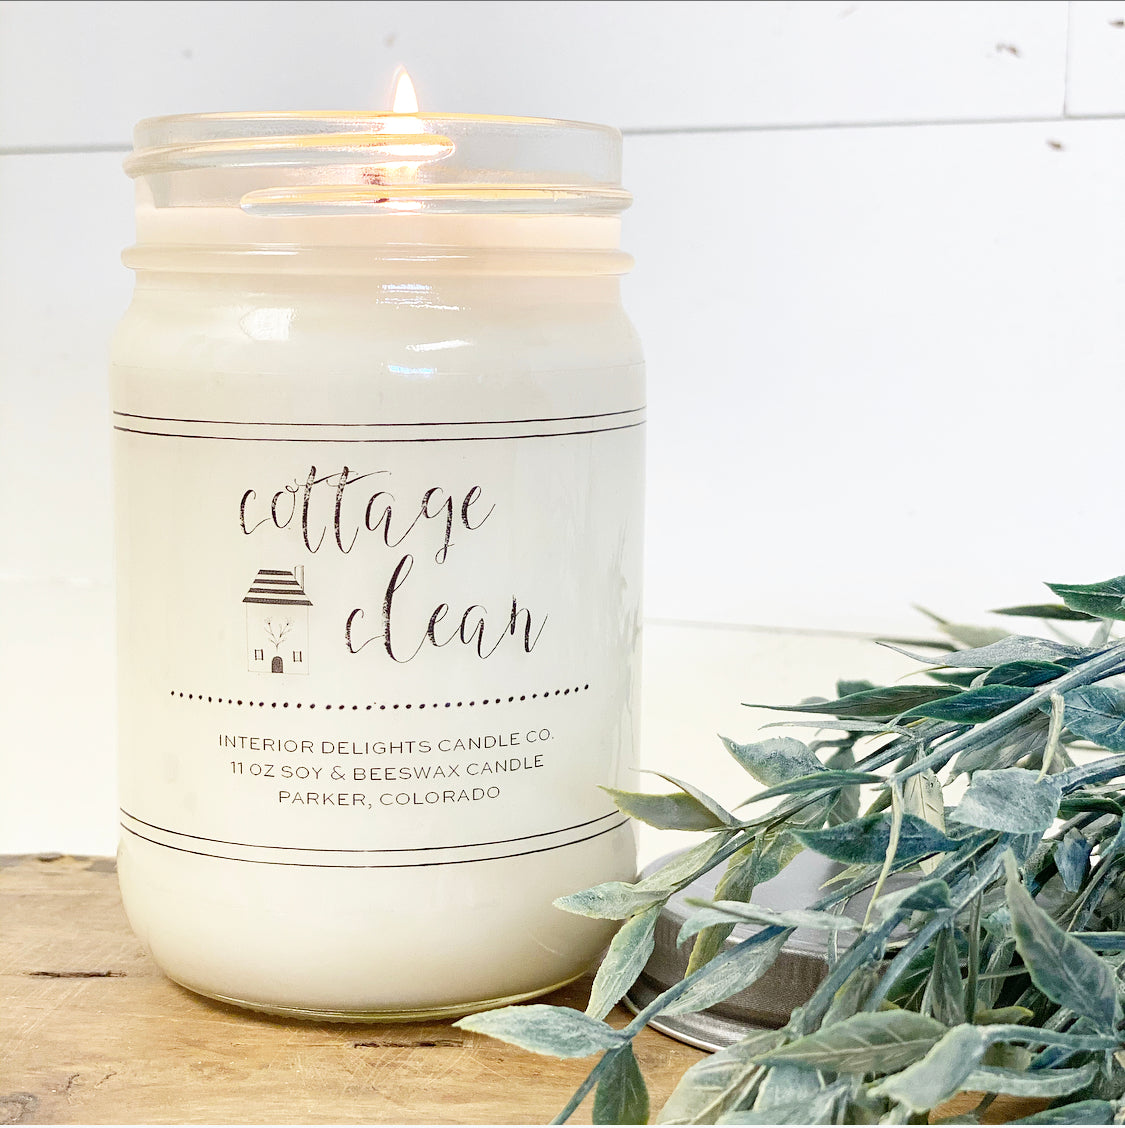 Cottage Clean Candle - Interior Delights Parker